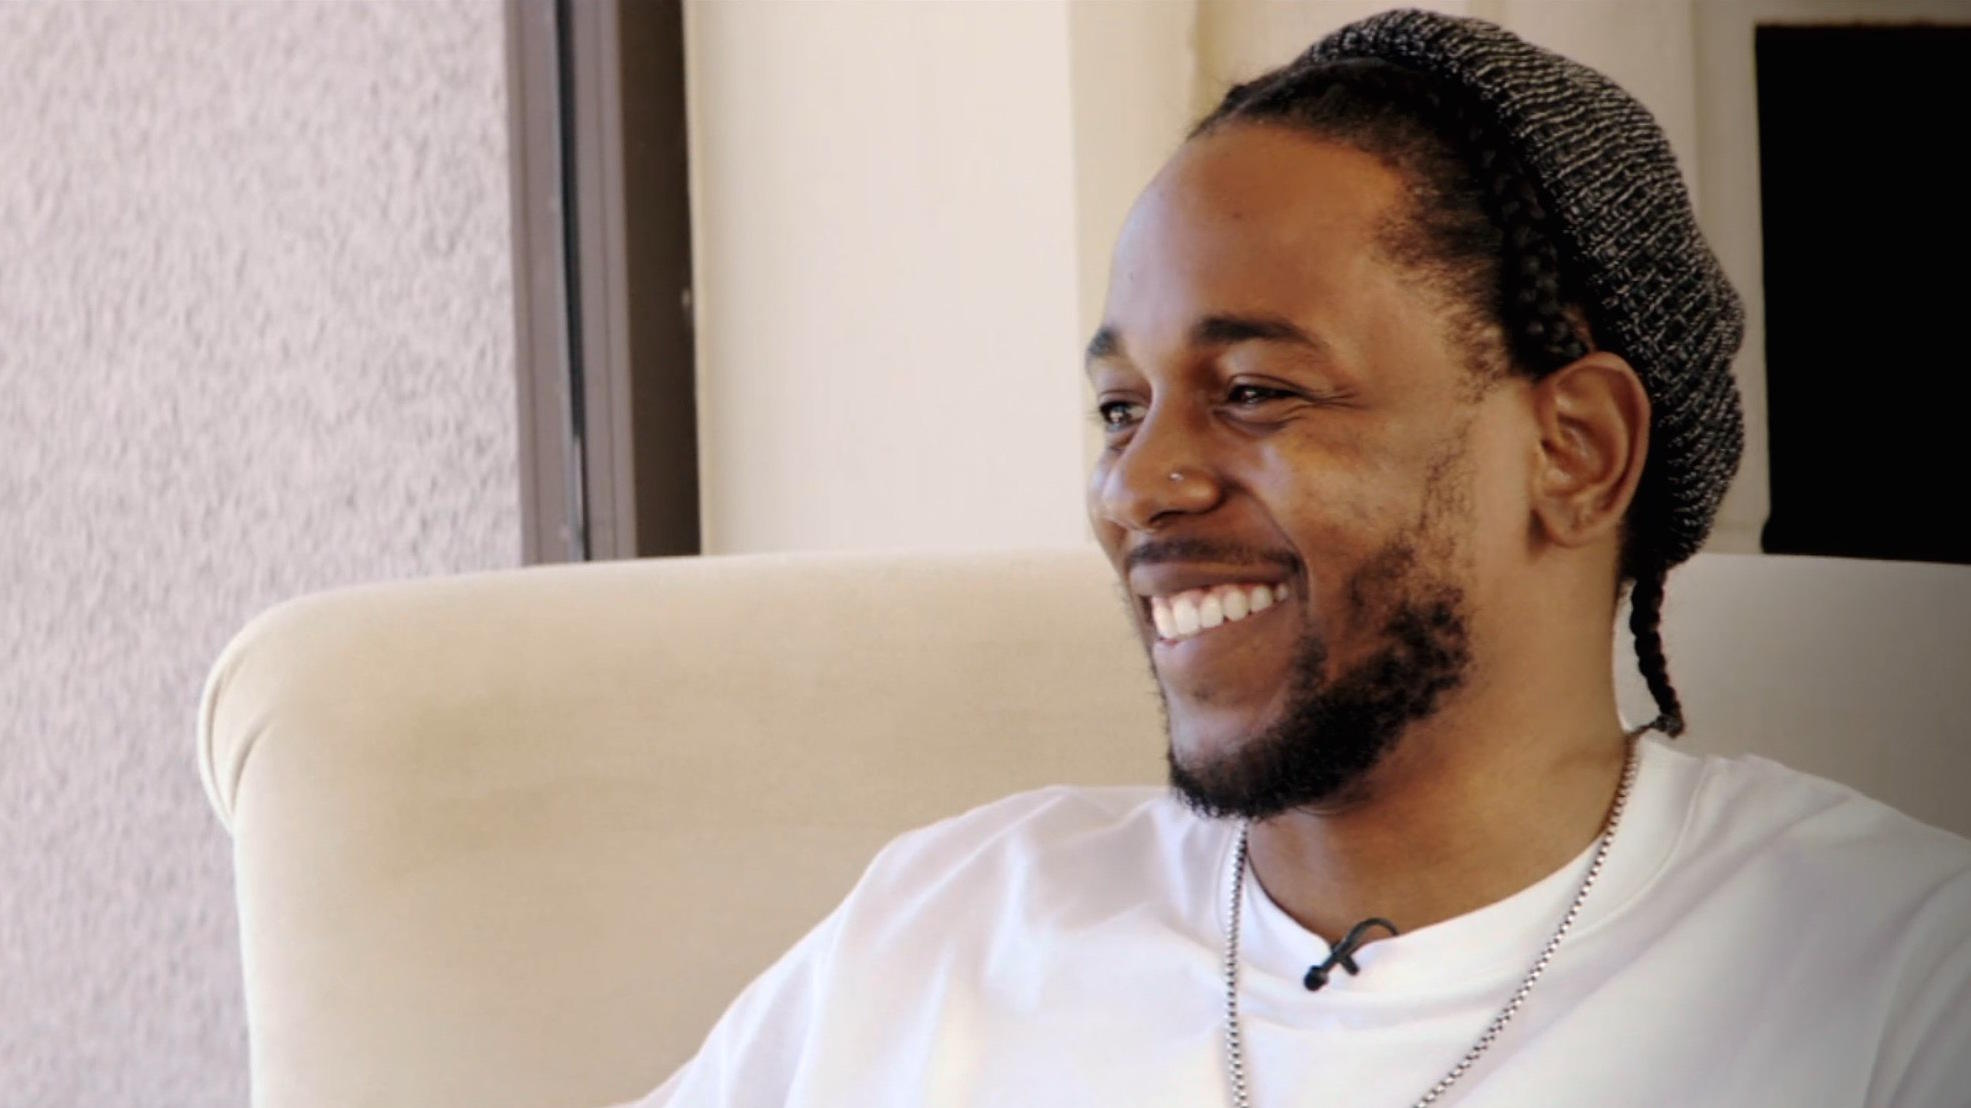 kendrick lamar s first interview after releasing damn is a kendrick lamar gives his first interview after the release of damn